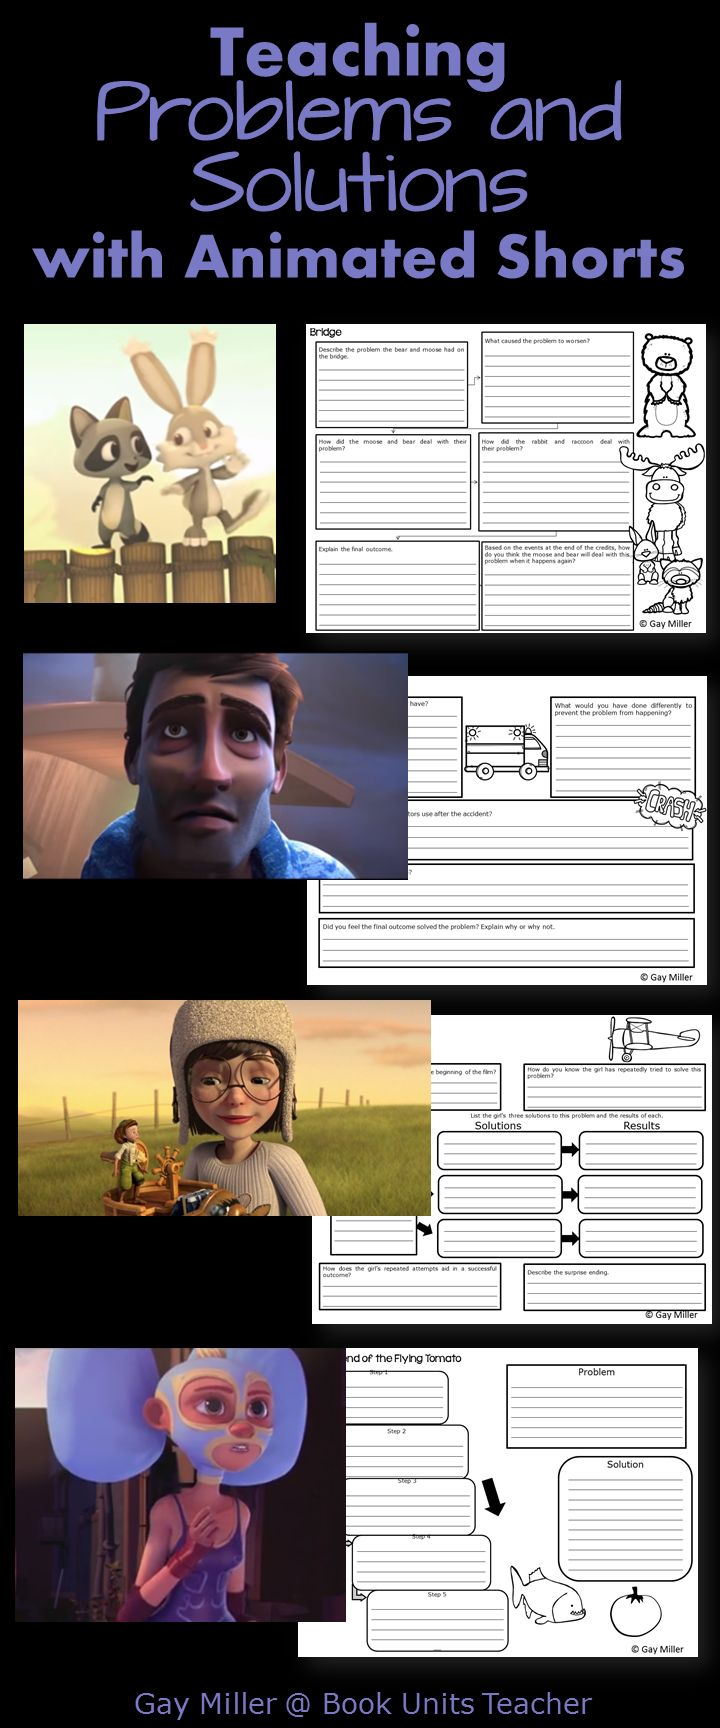 Using Animated Shorts to Teach Problems and Solutions